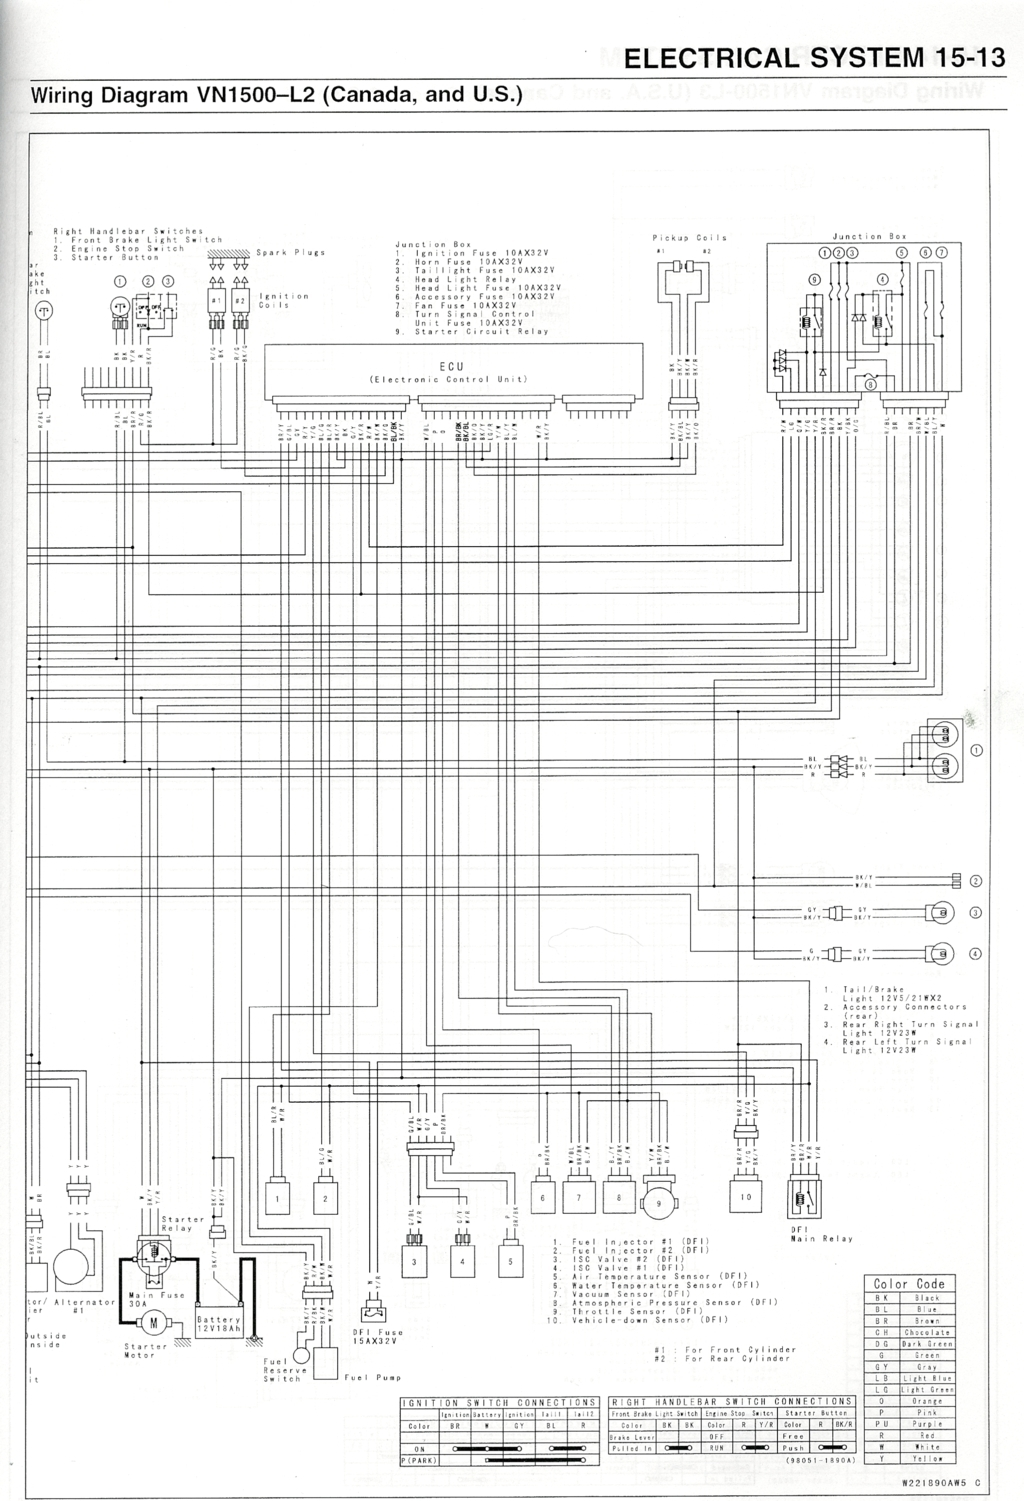 1999 victory 92 wiring diagram wiring libraryvulcan wiring diagrams gadget\u0027s fixit page suzuki intruder 1500 wiring diagram page 1 is known to